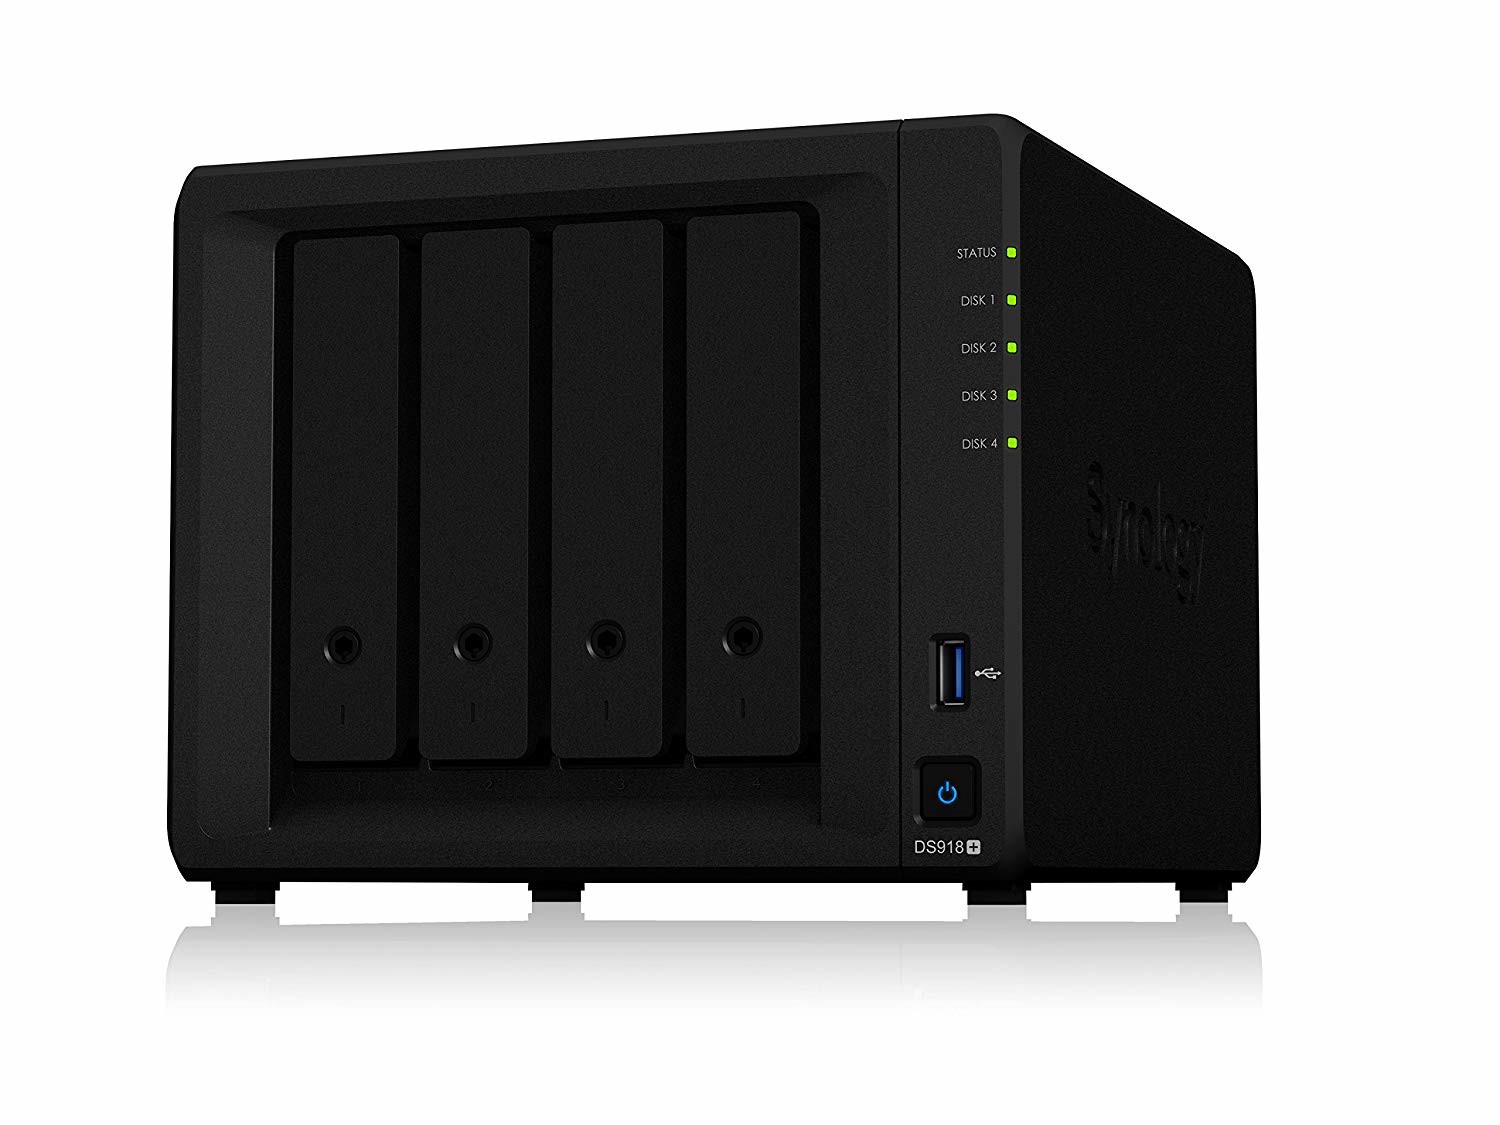 Synology 4 bay NAS DiskStation DS918+